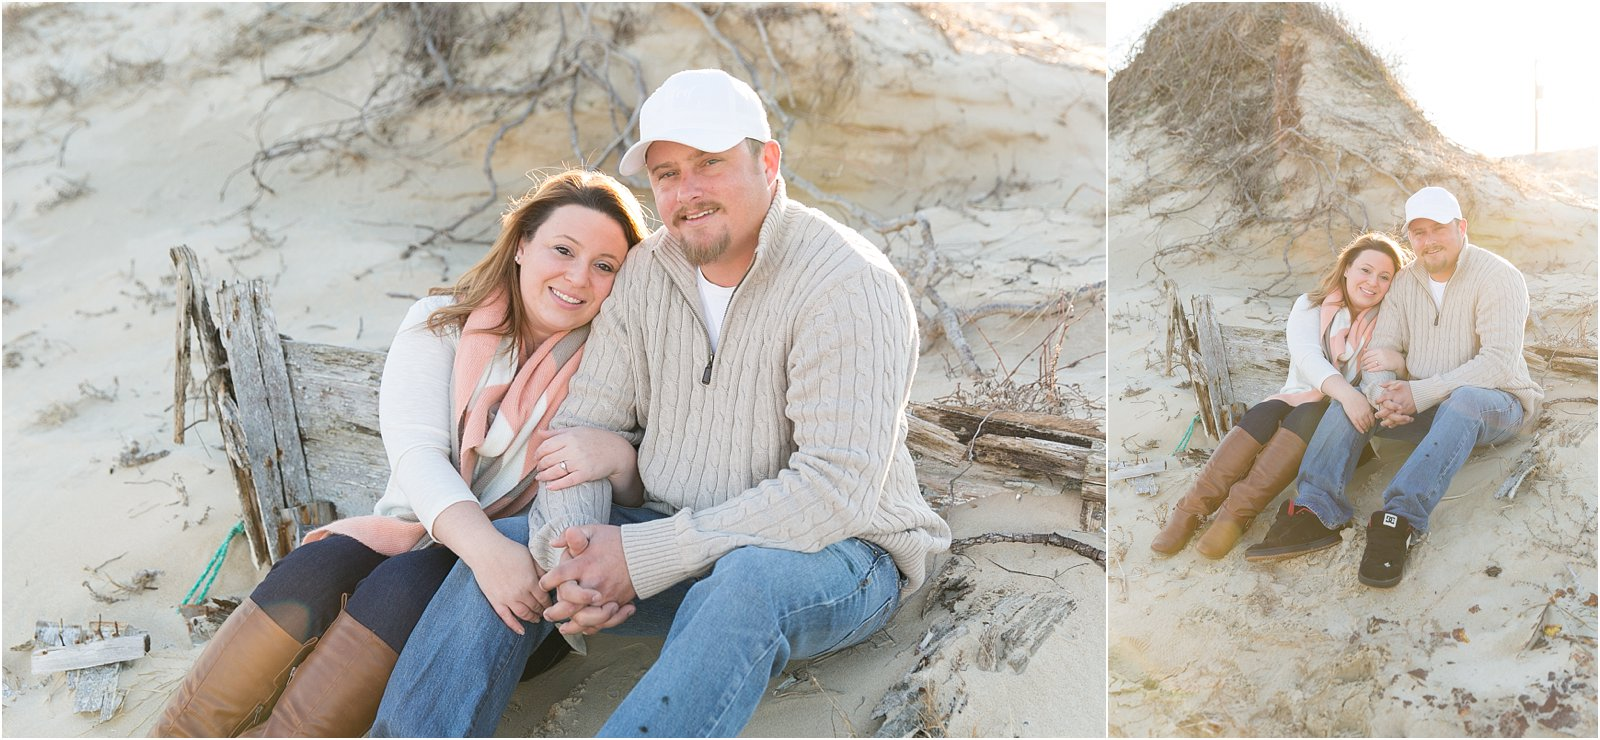 jessica_ryan_photography_pumpkin_patch_engagement_portraits_fall_october_engagements_virginia_beach_chesapeake_0307